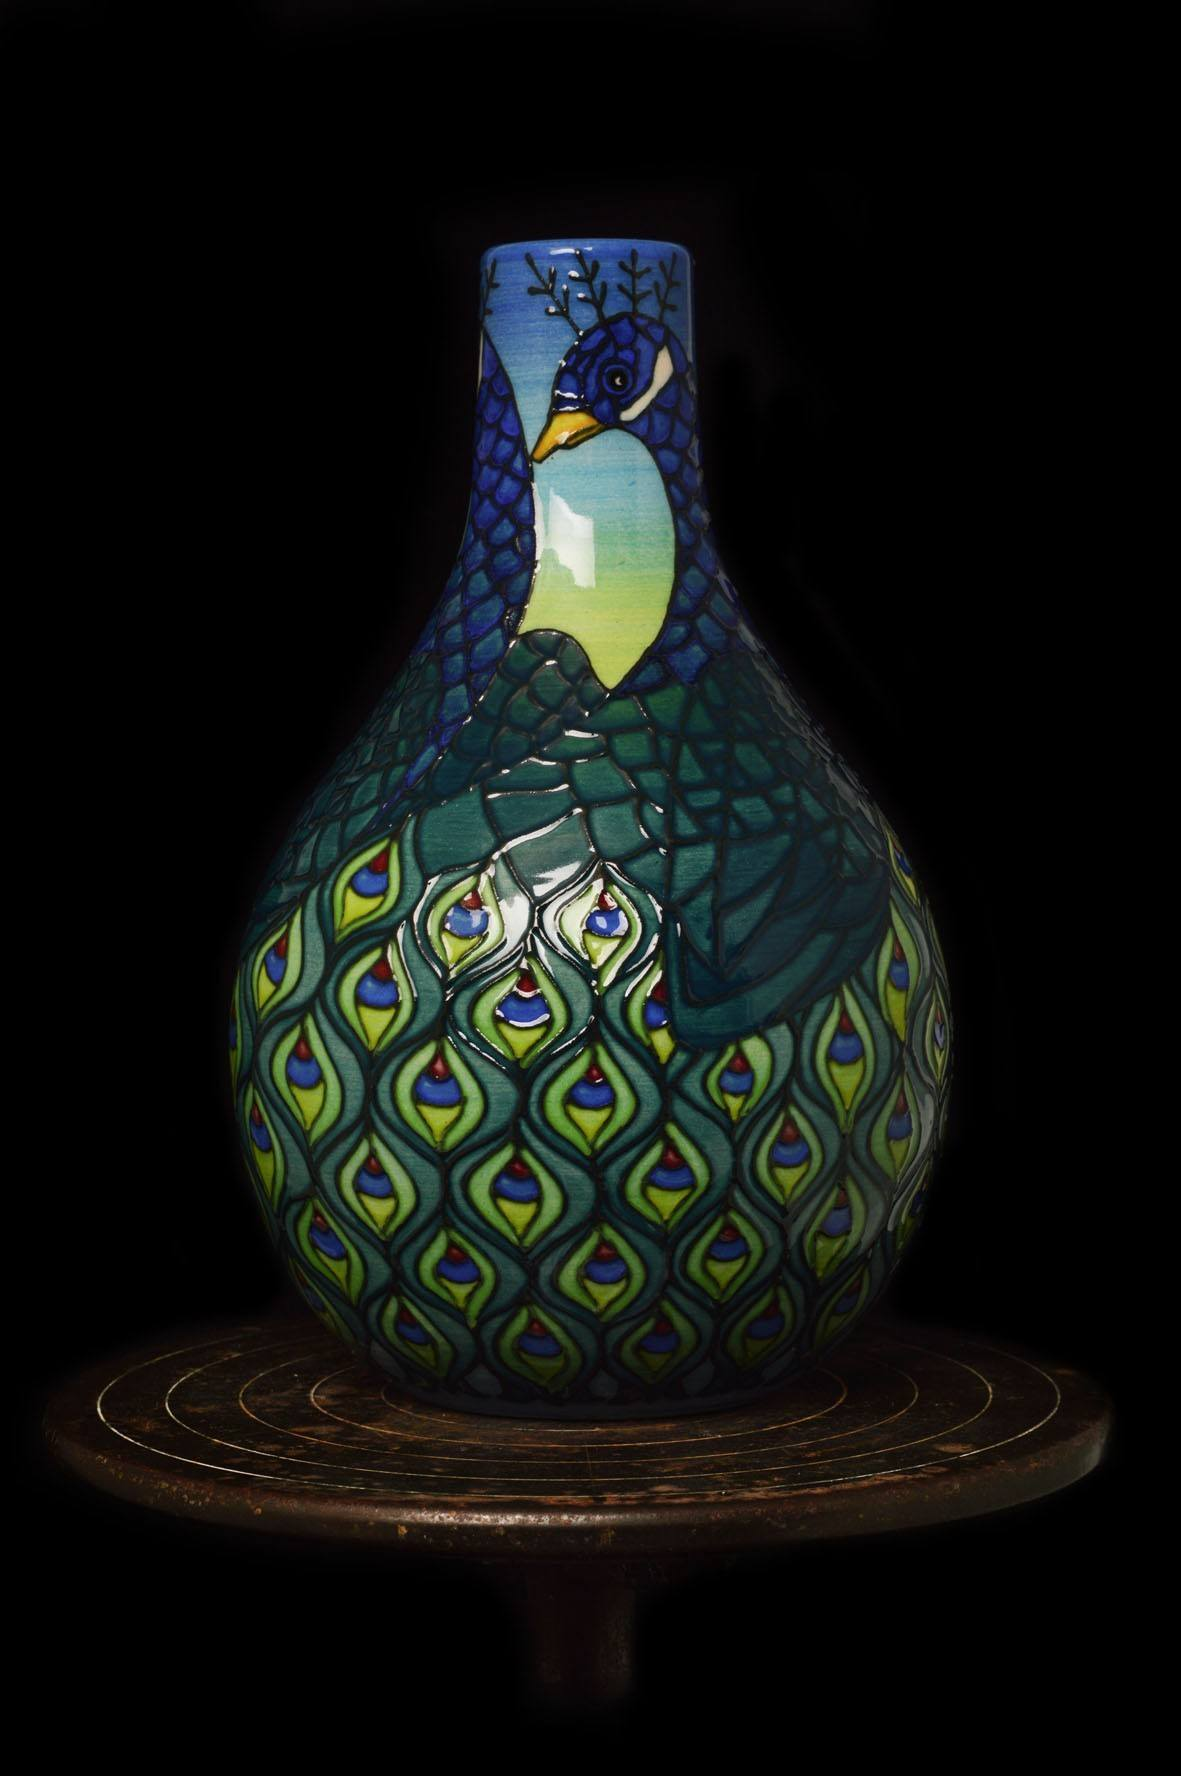 1417542425peacock-sf-bottle-6.jpg